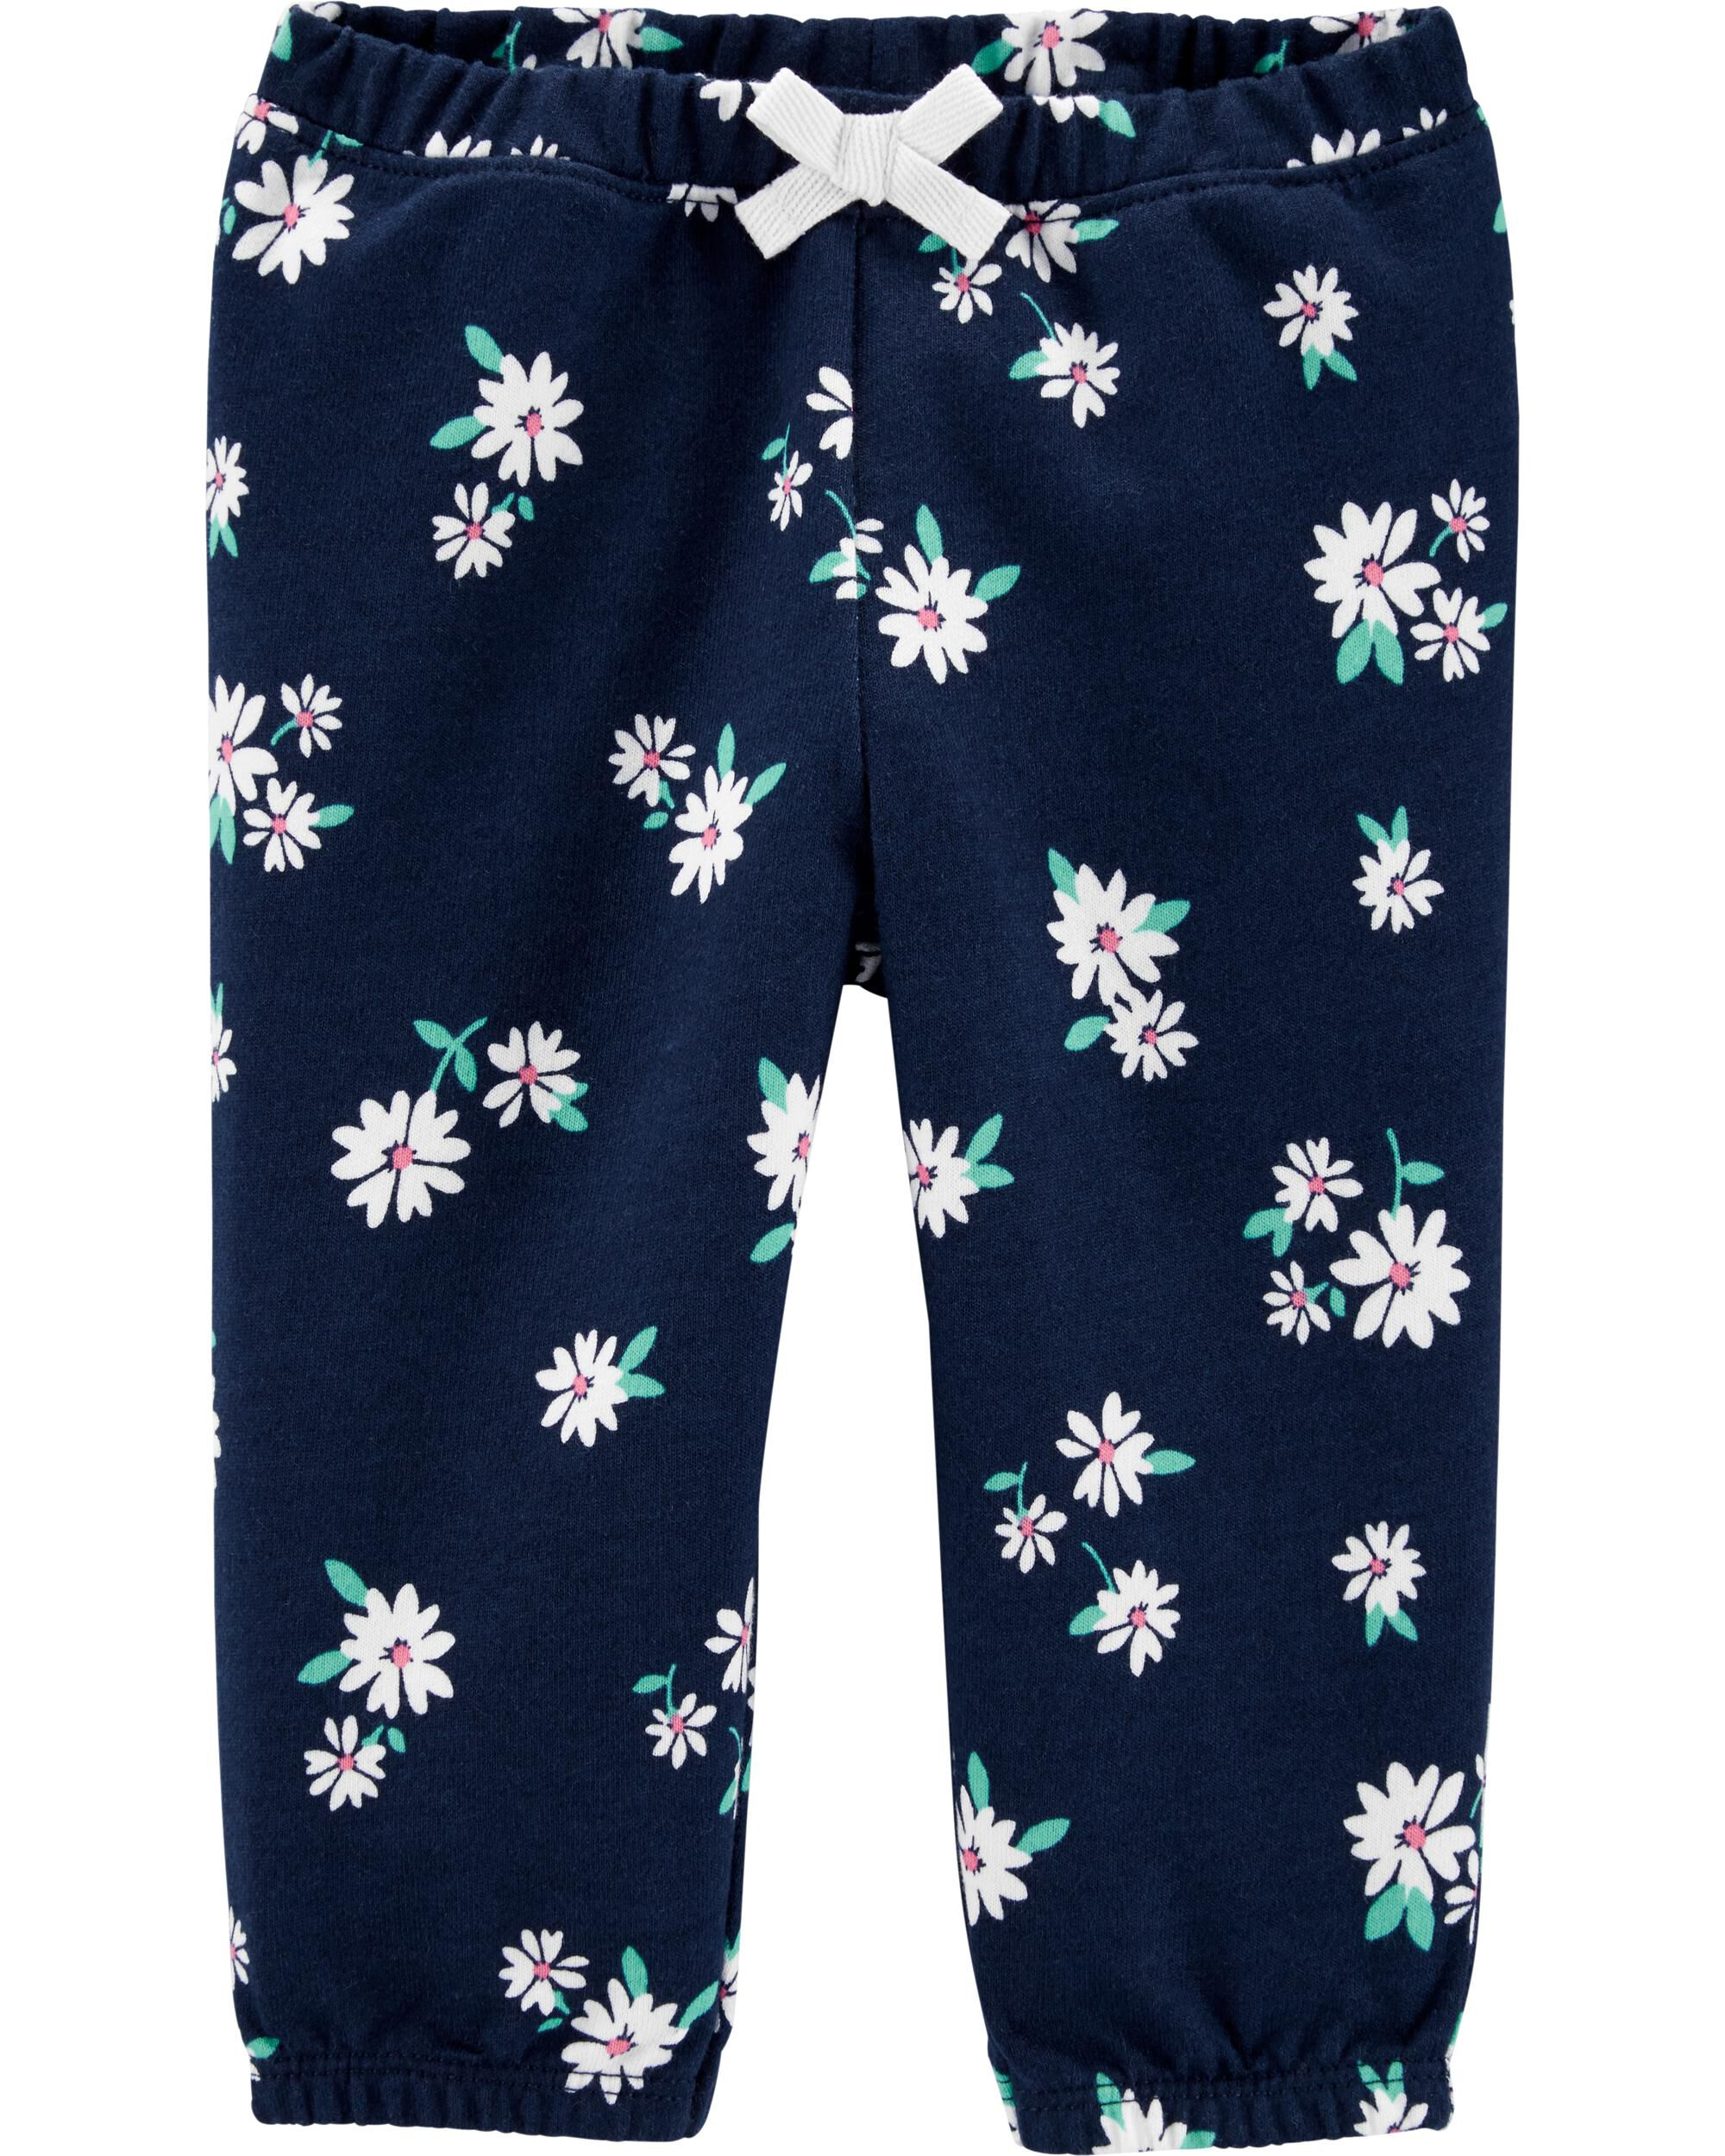 *DOORBUSTER* Floral Pull-On French Terry Pants